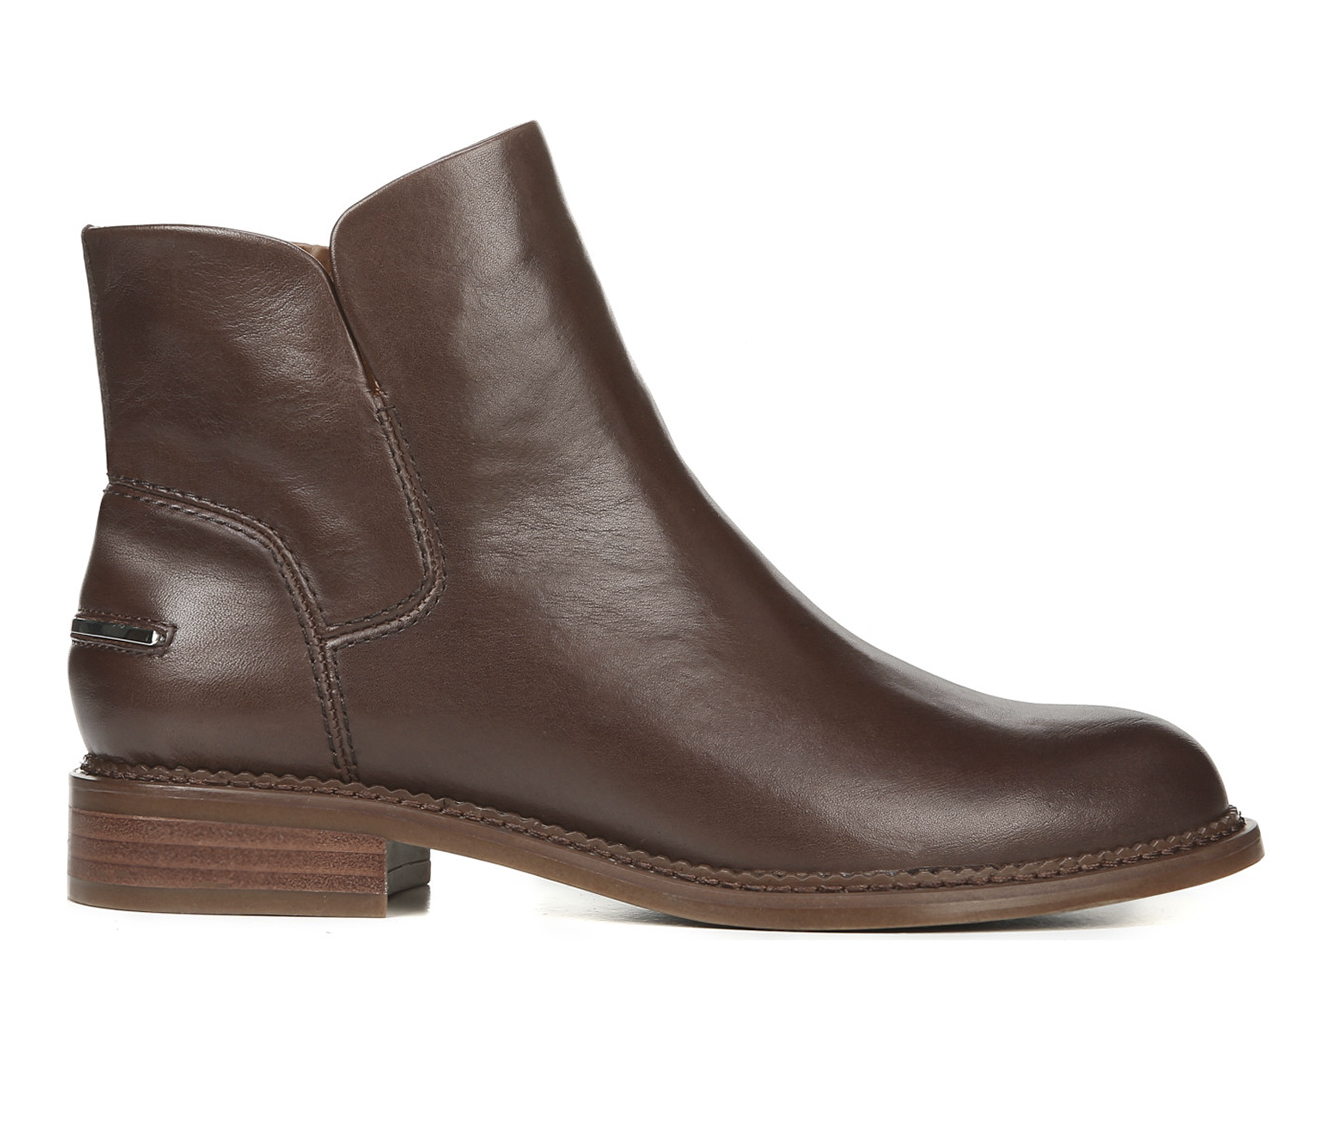 Franco Sarto Happily Women's Boots (Brown - Leather)